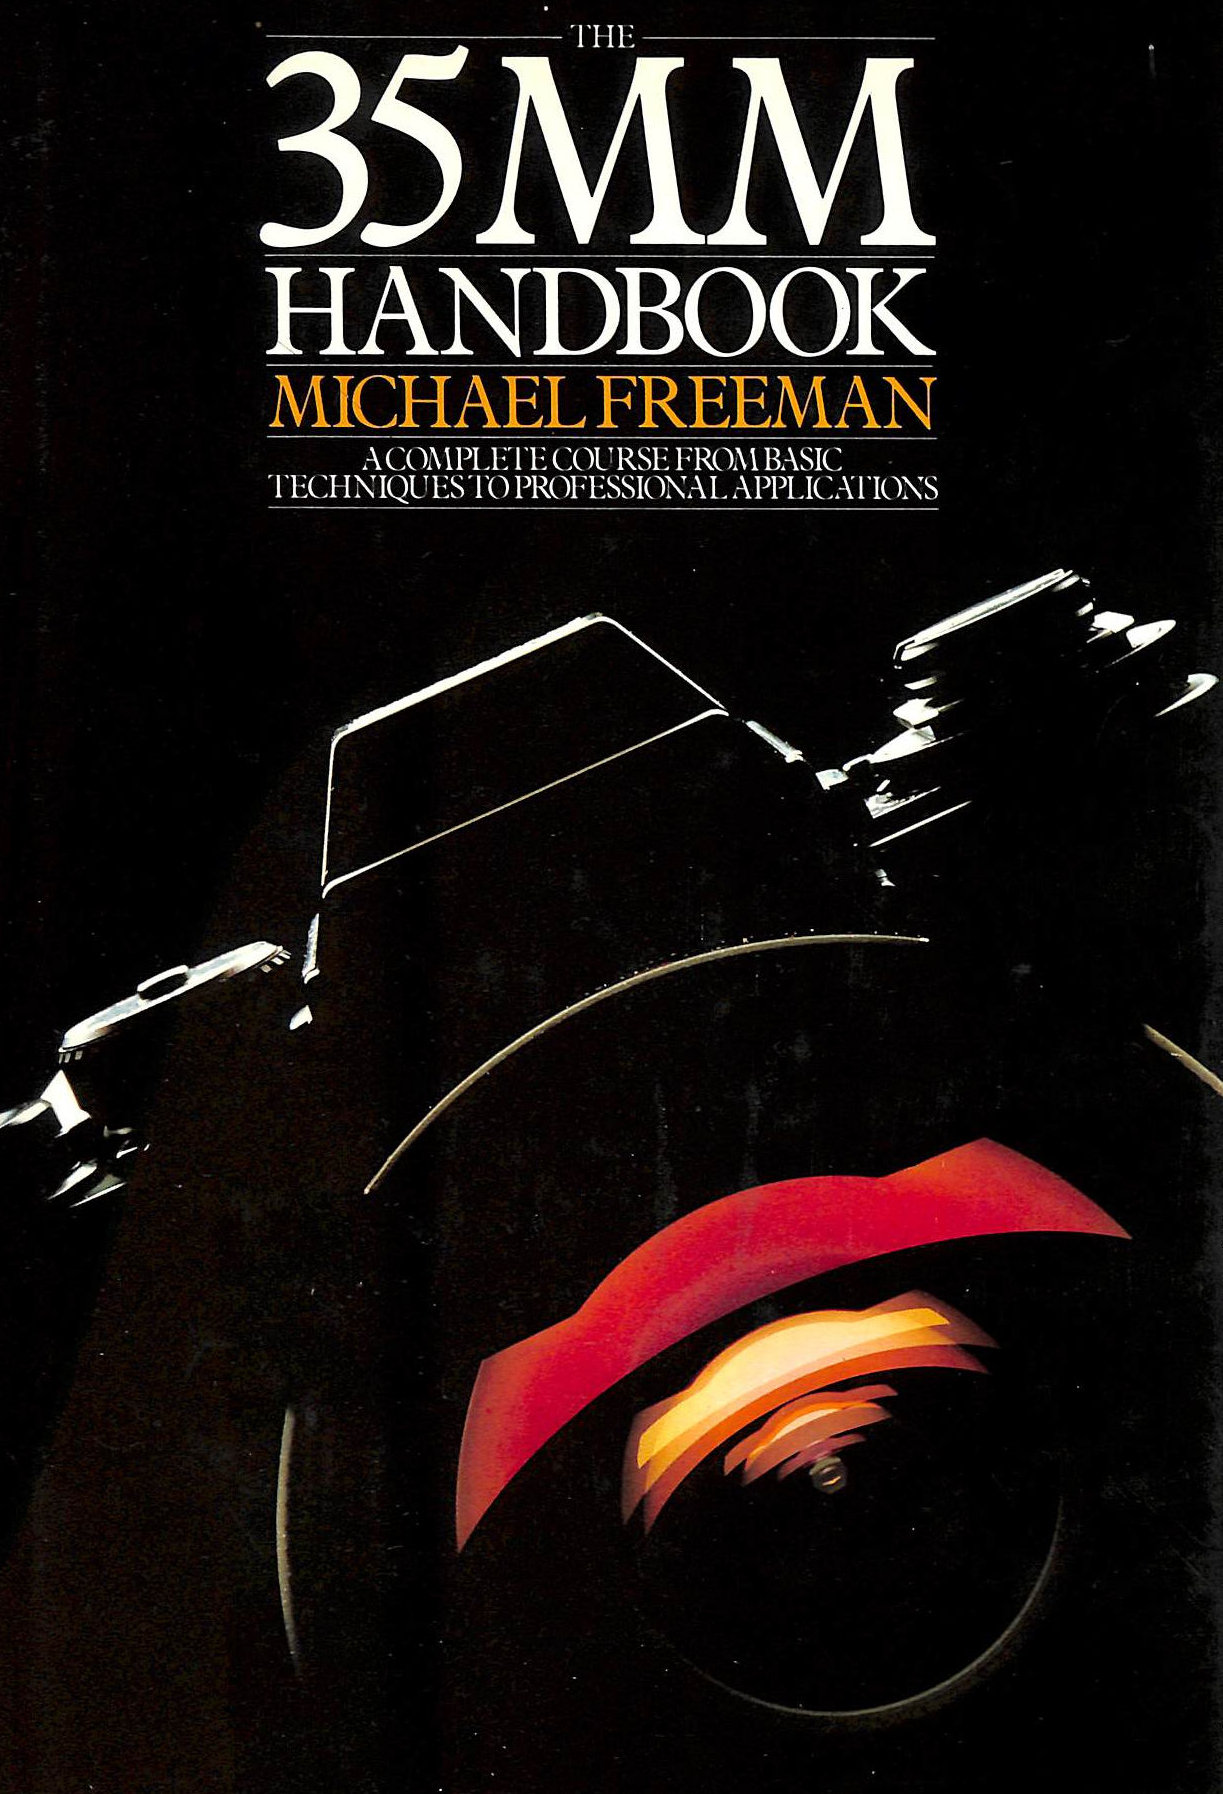 Image for The 35Mm Handbook.